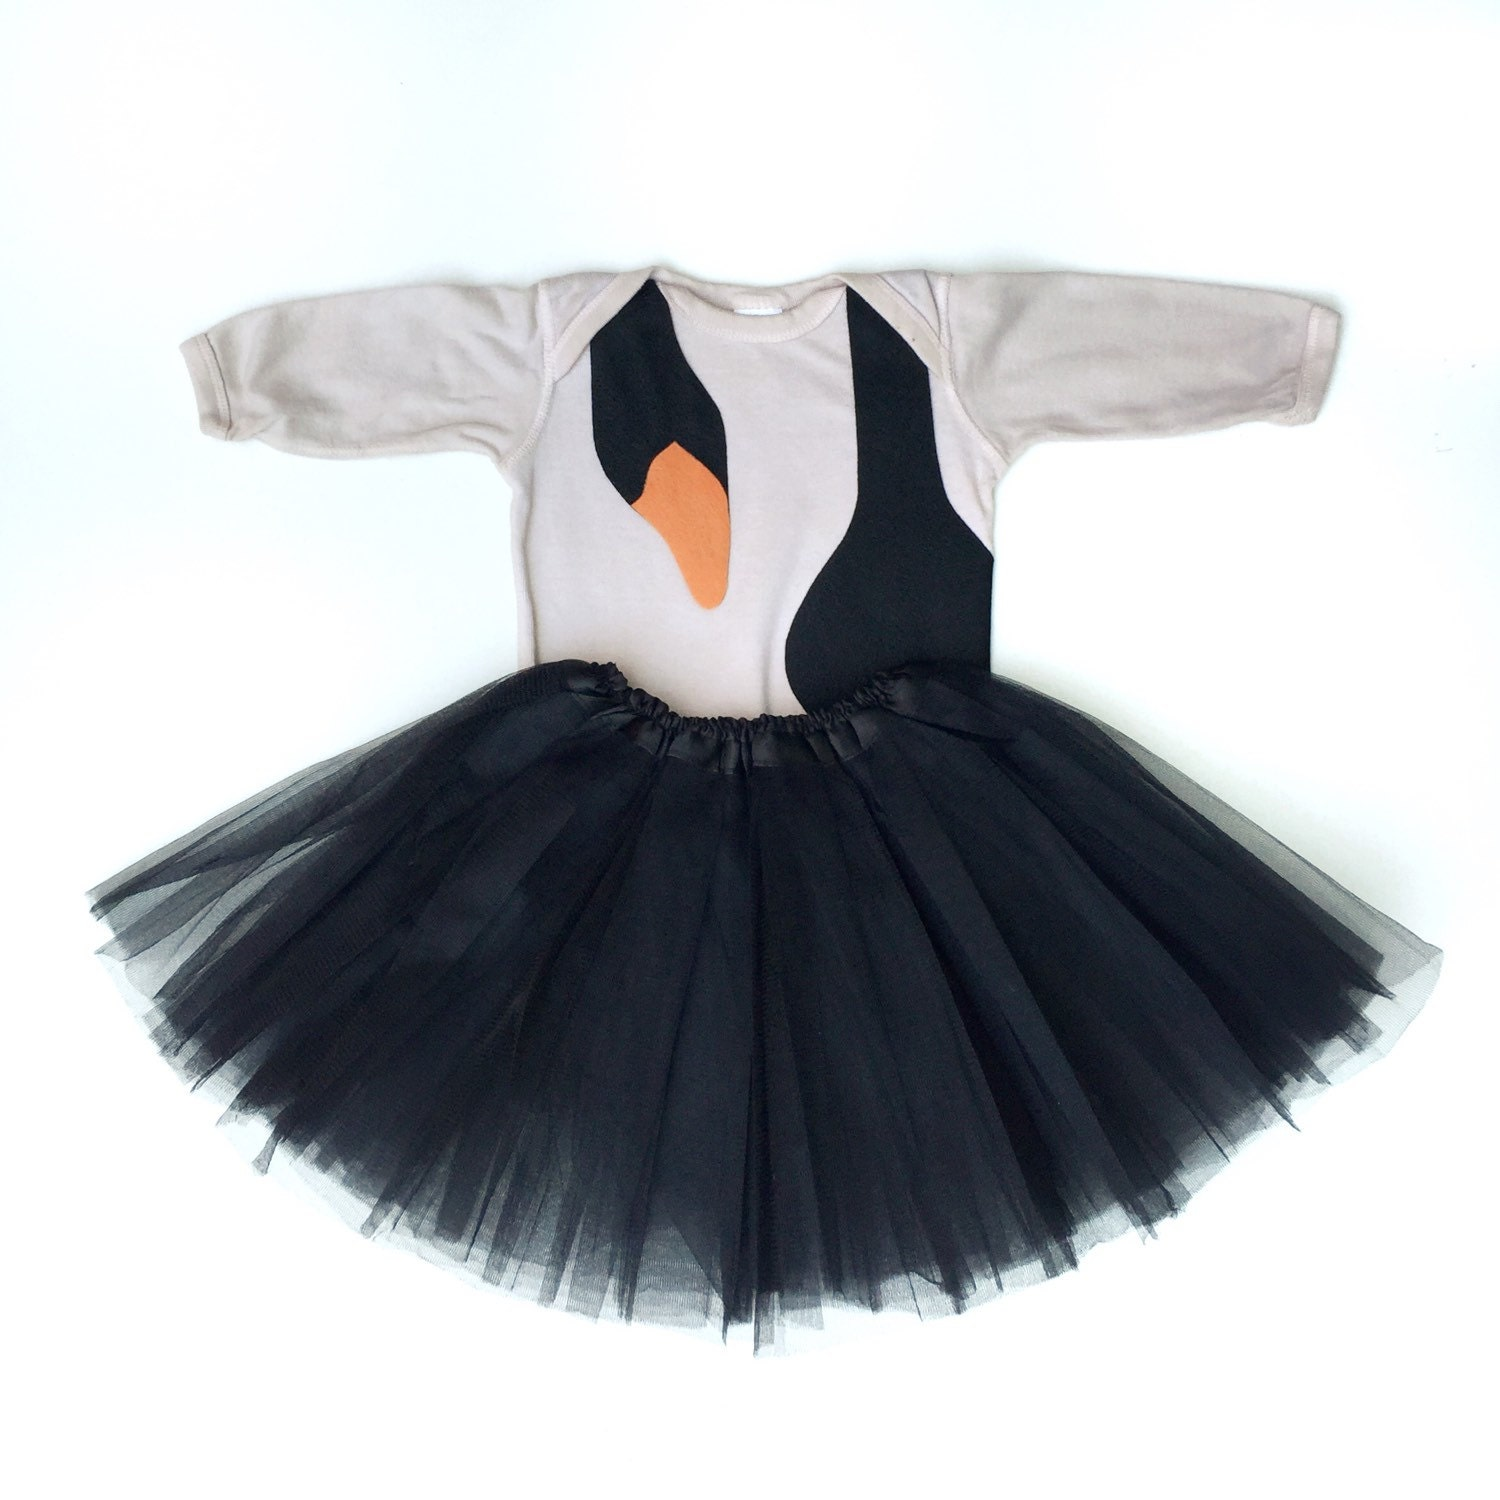 black swan costume baby black swan bird halloween costume. Black Bedroom Furniture Sets. Home Design Ideas